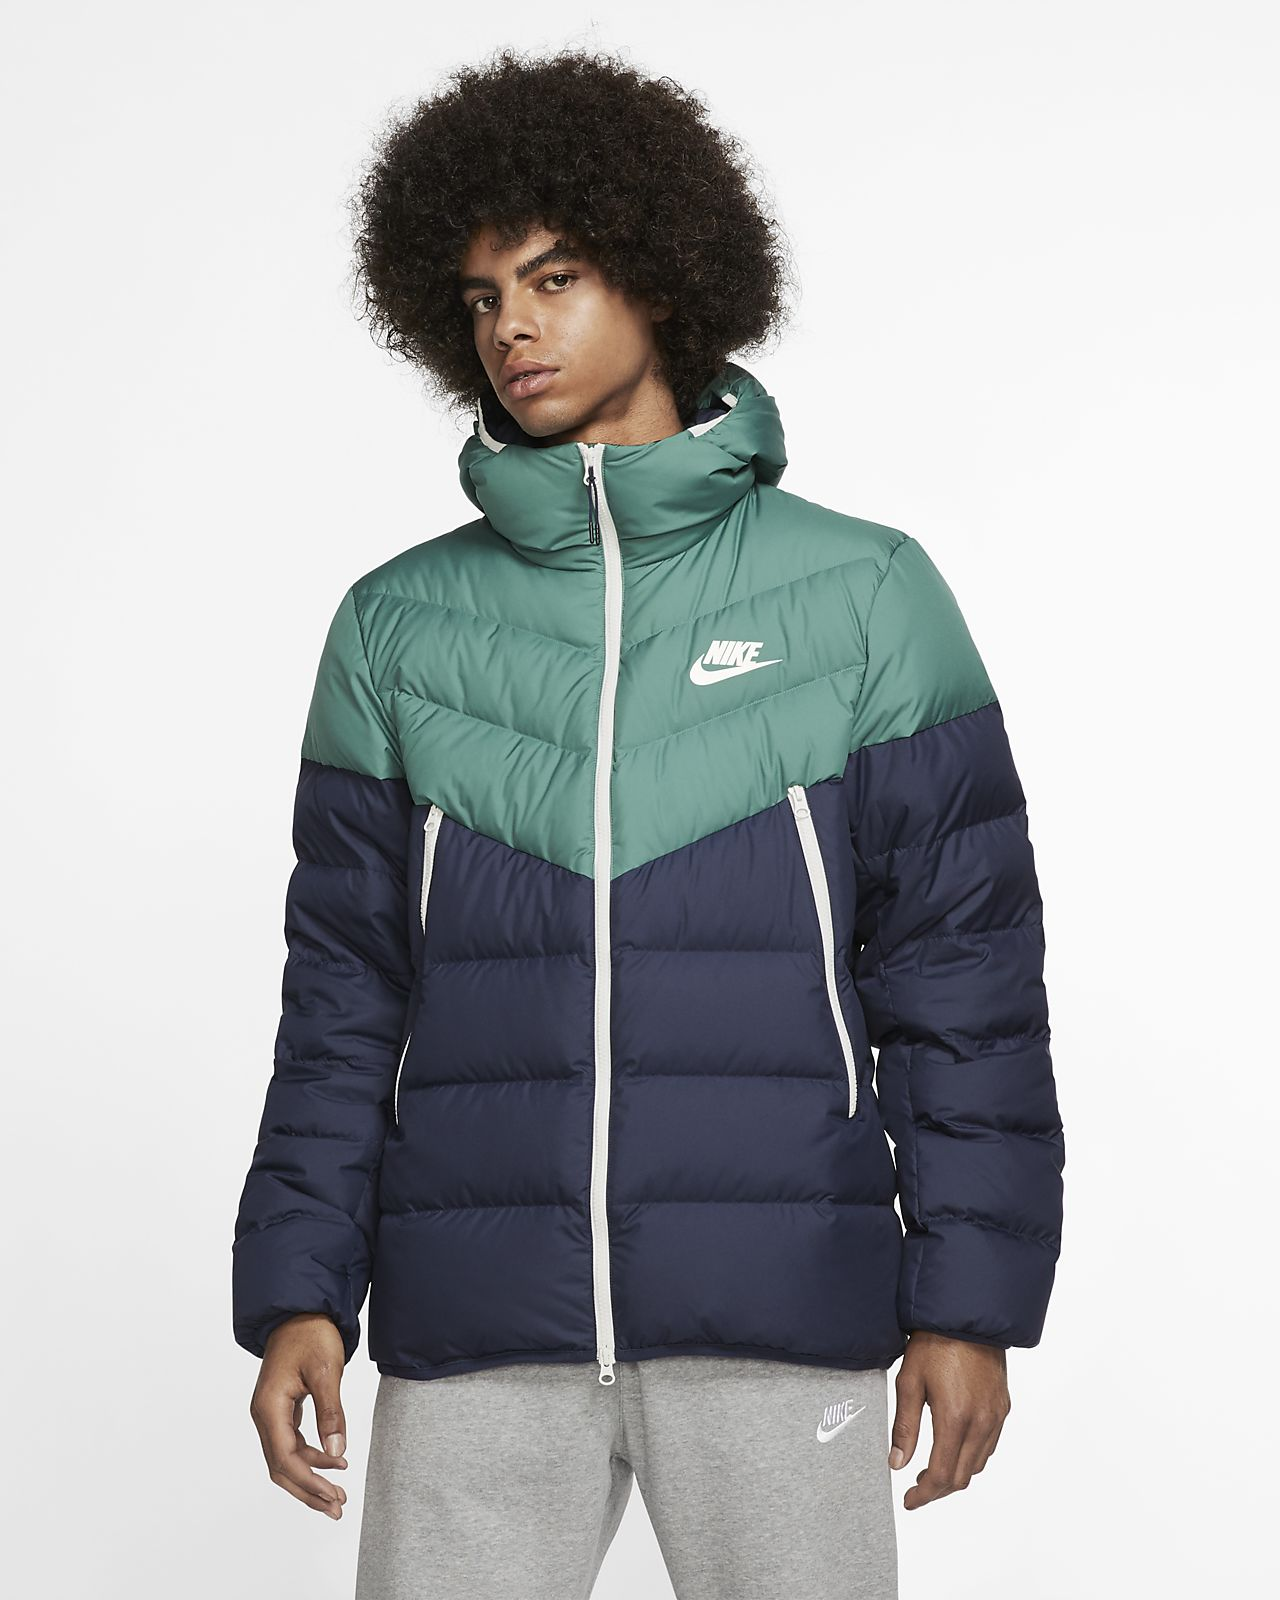 nike windrunner w giacca invernale